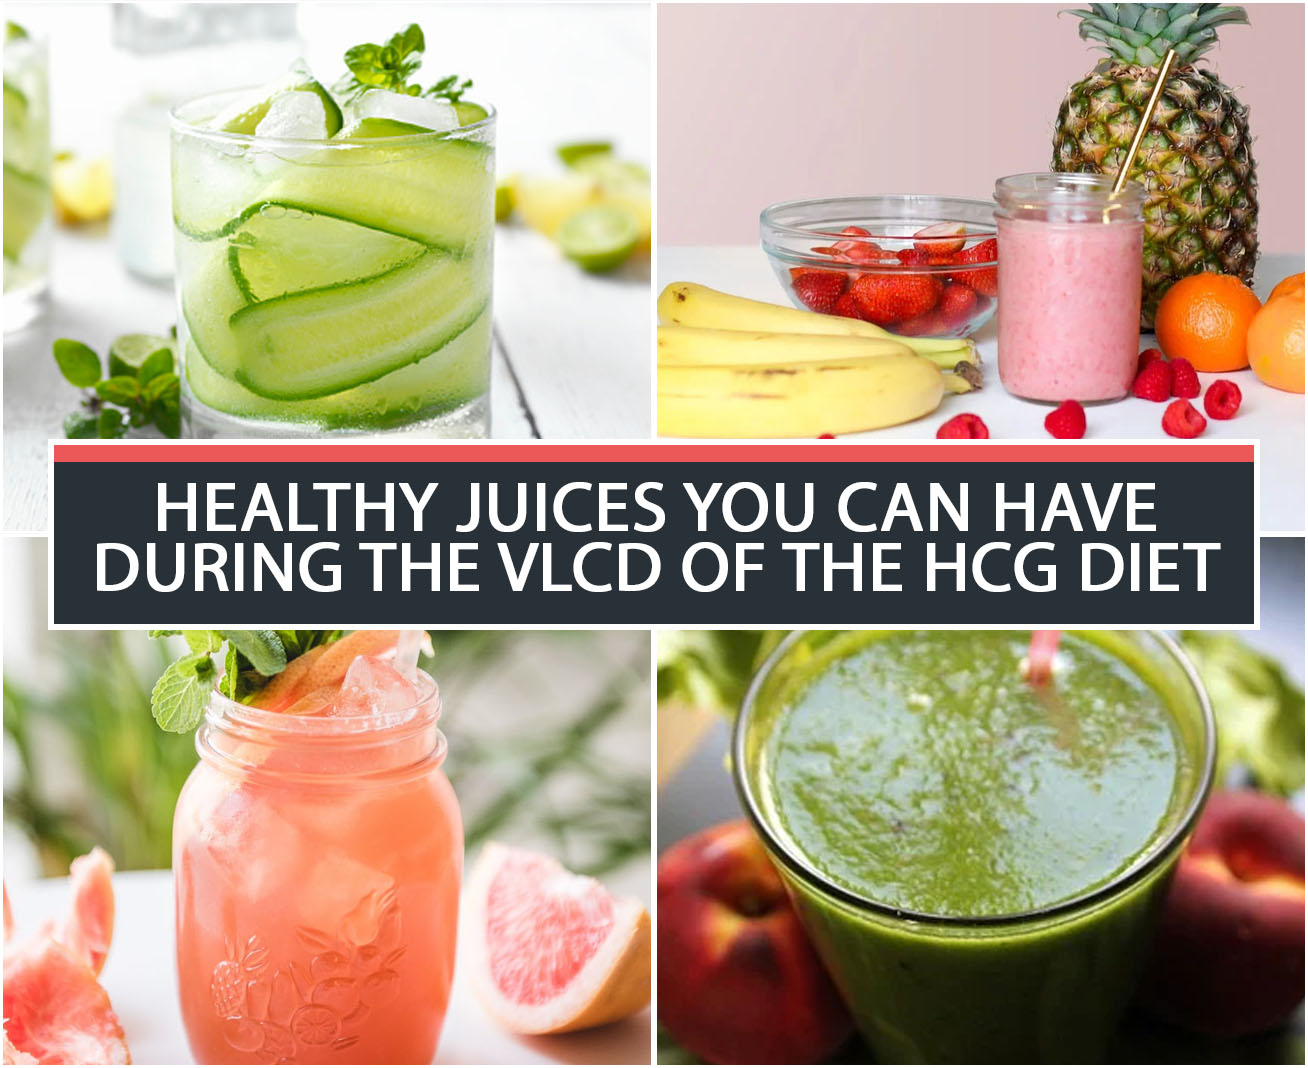 HEALTHY JUICES YOU CAN HAVE DURING THE VLCD OF THE HCG DIET